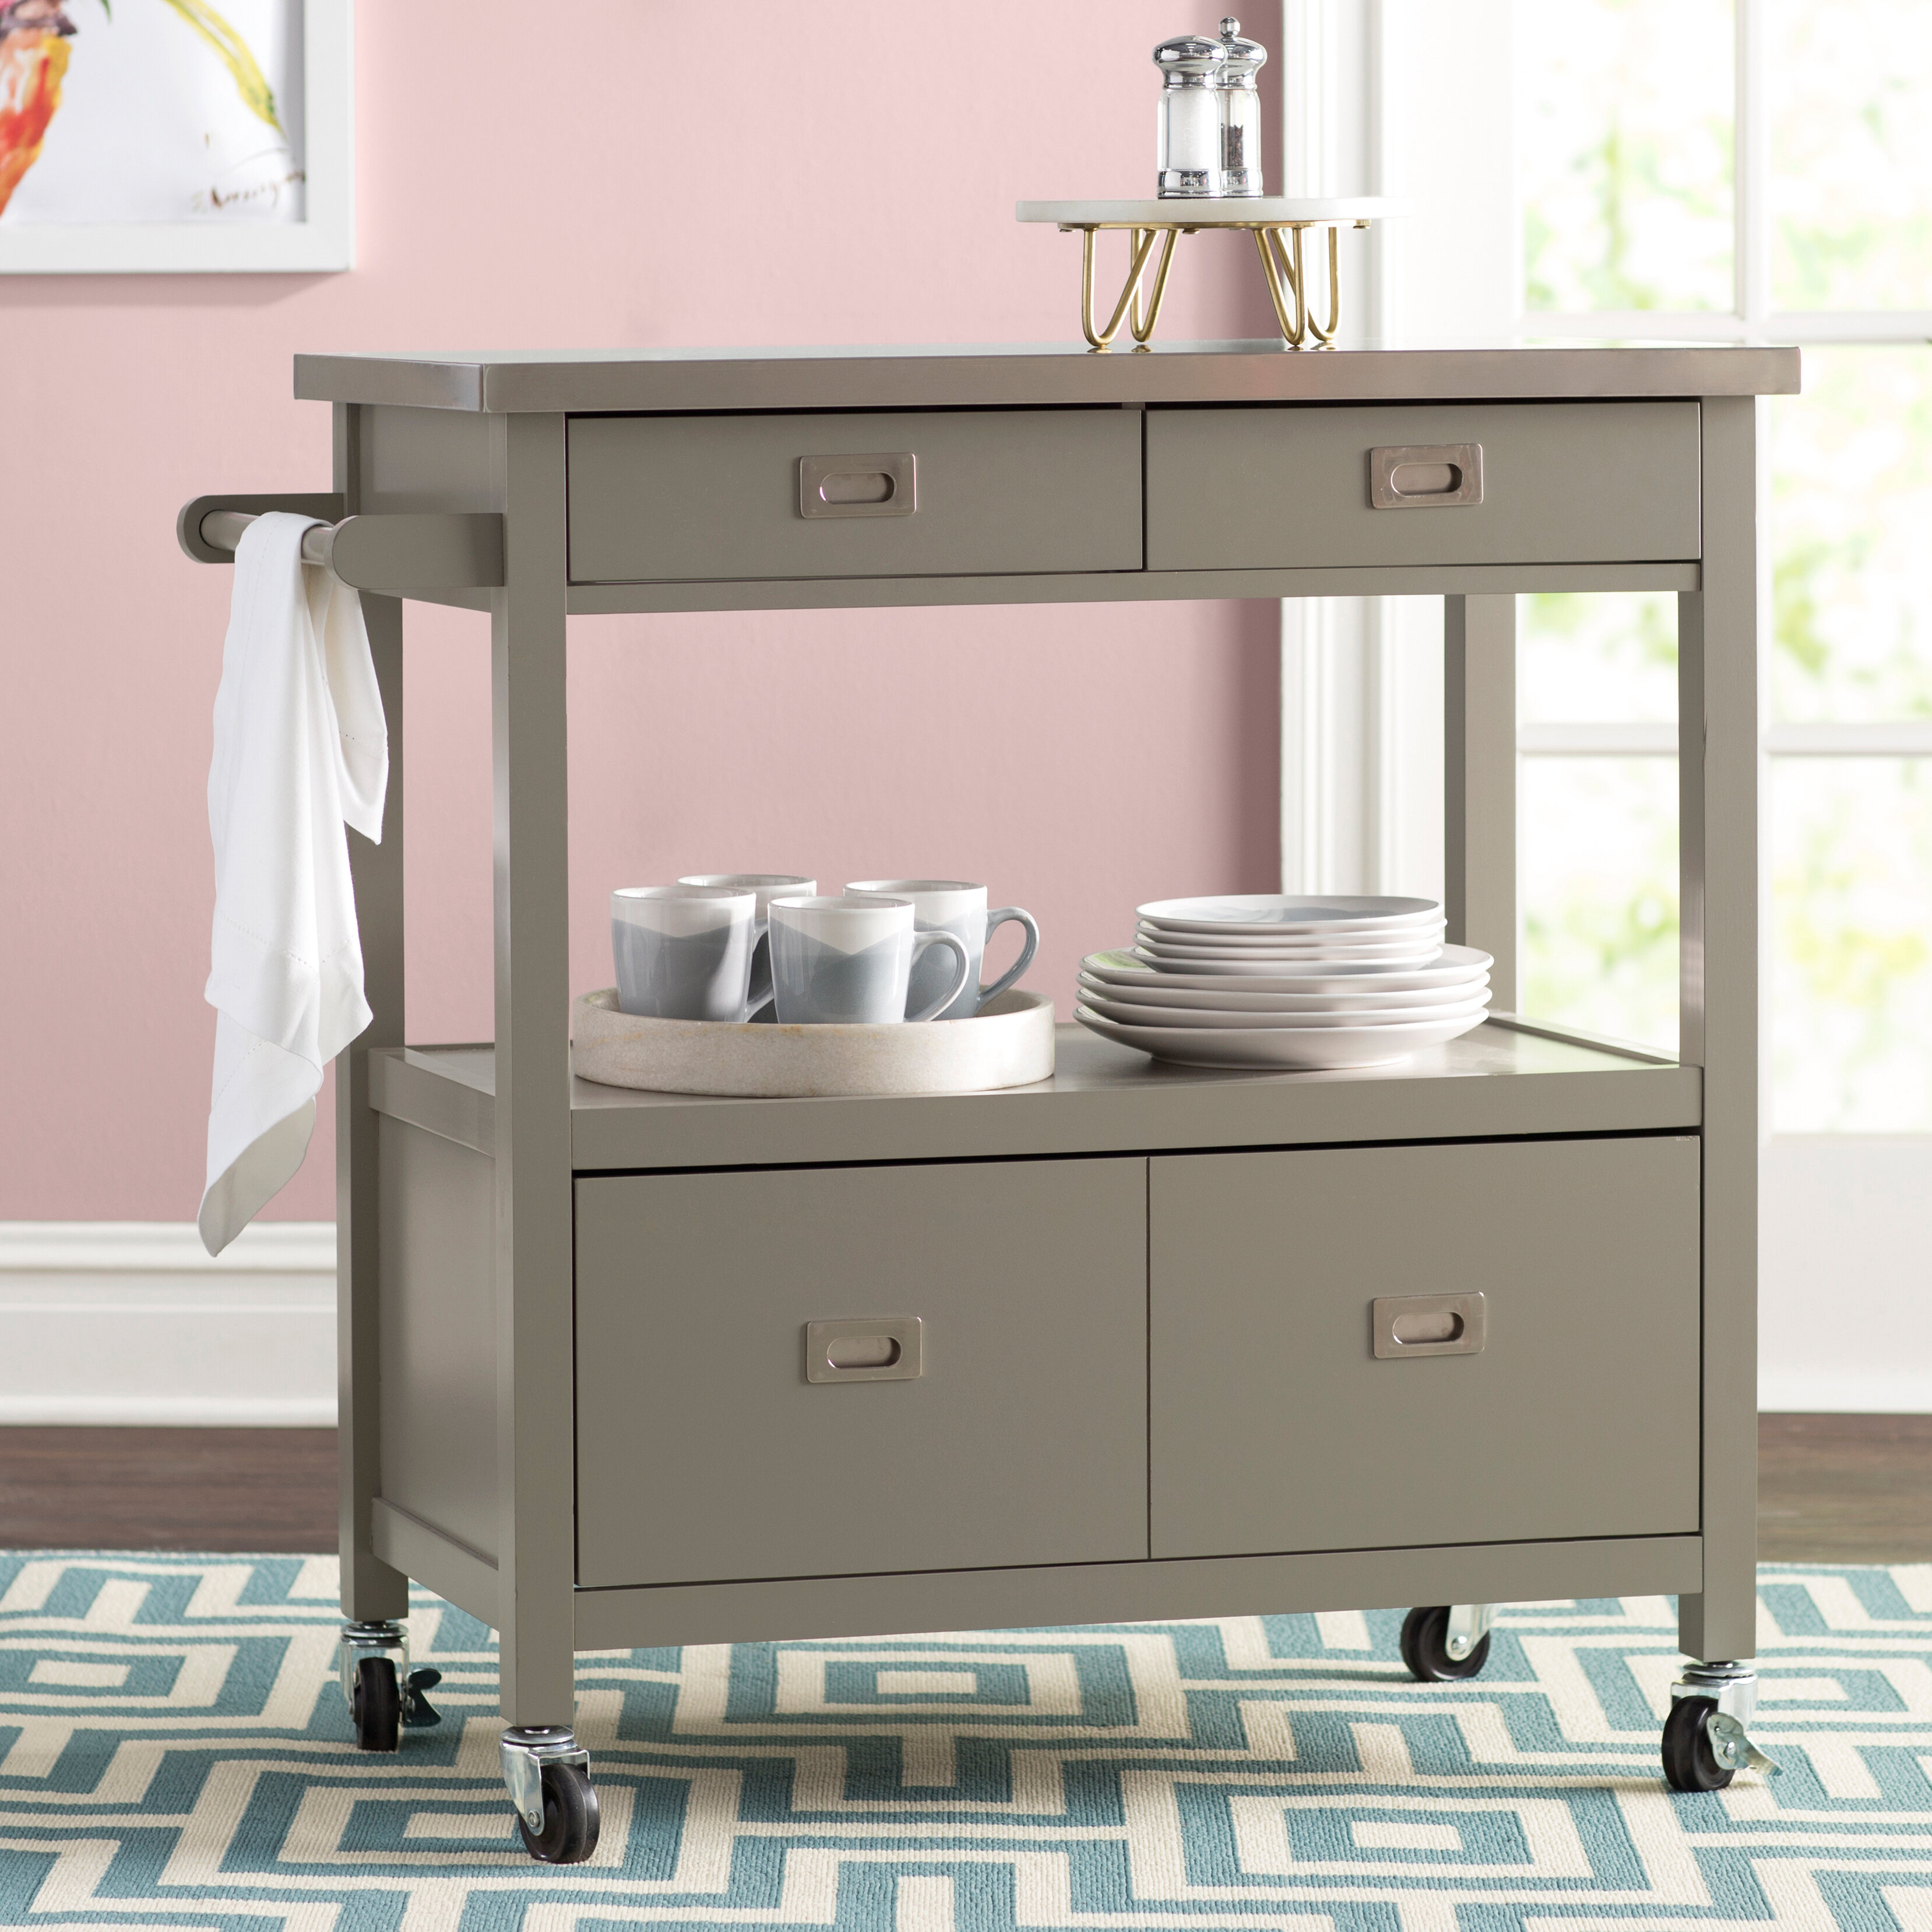 Willa arlo interiors eira kitchen island with stainless steel top reviews wayfair